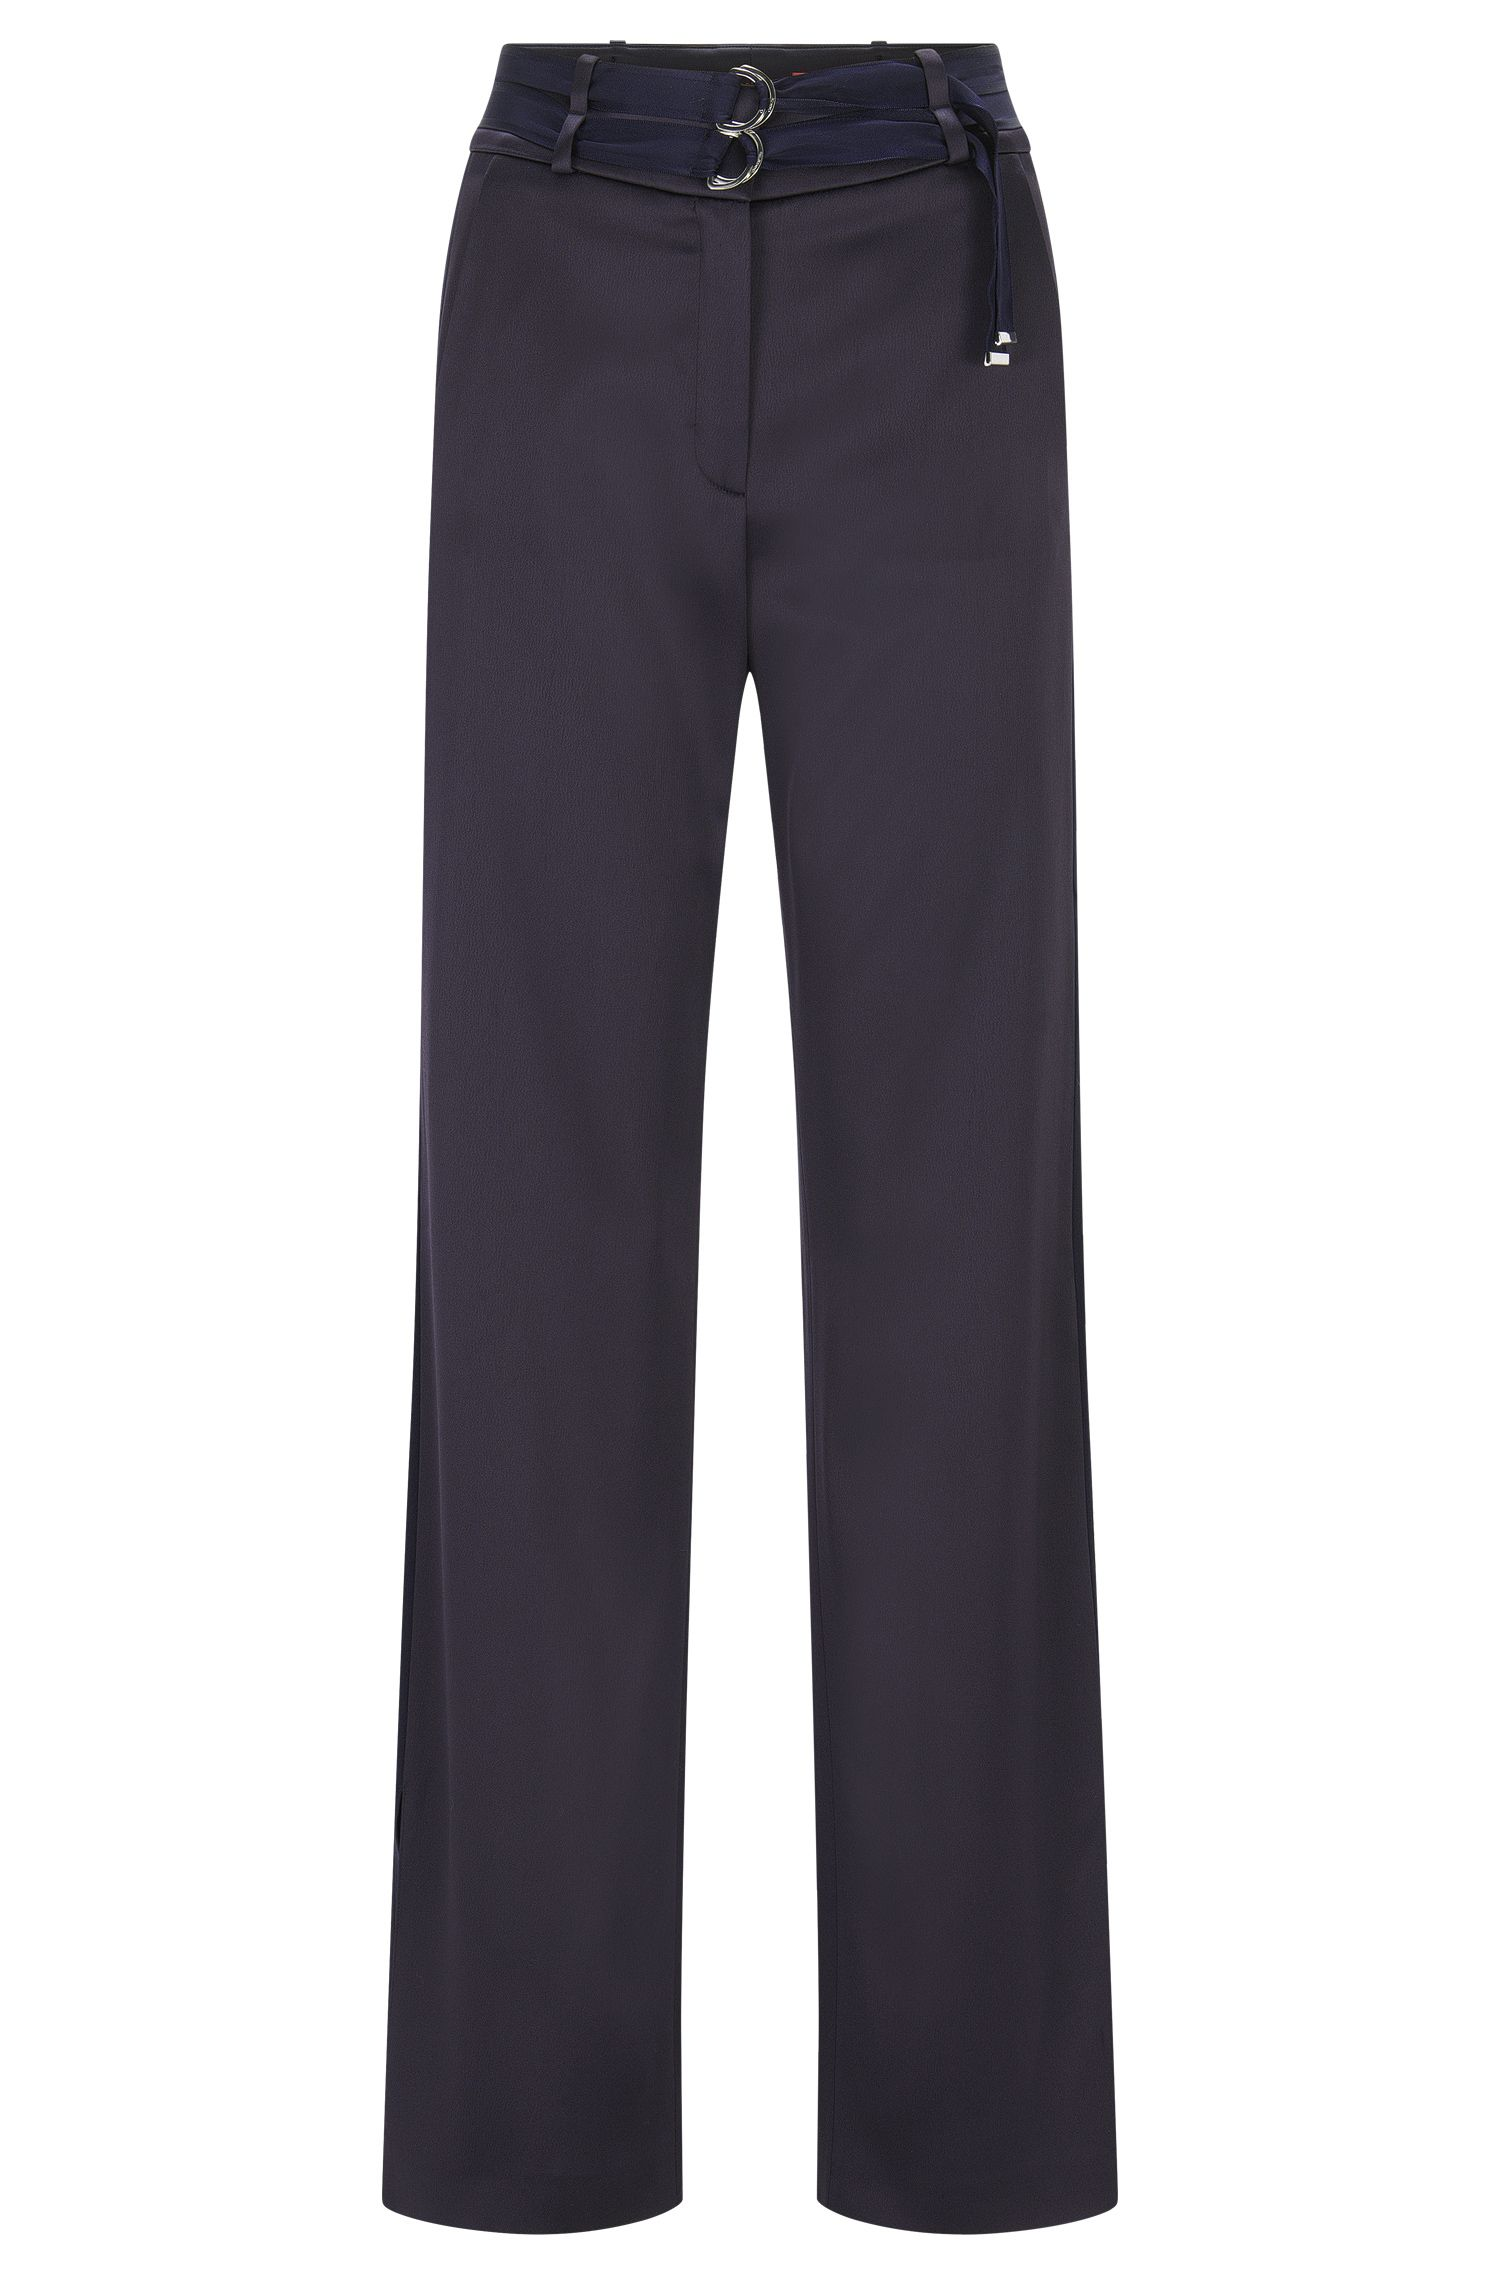 Relaxed-fit trousers with double belt detail